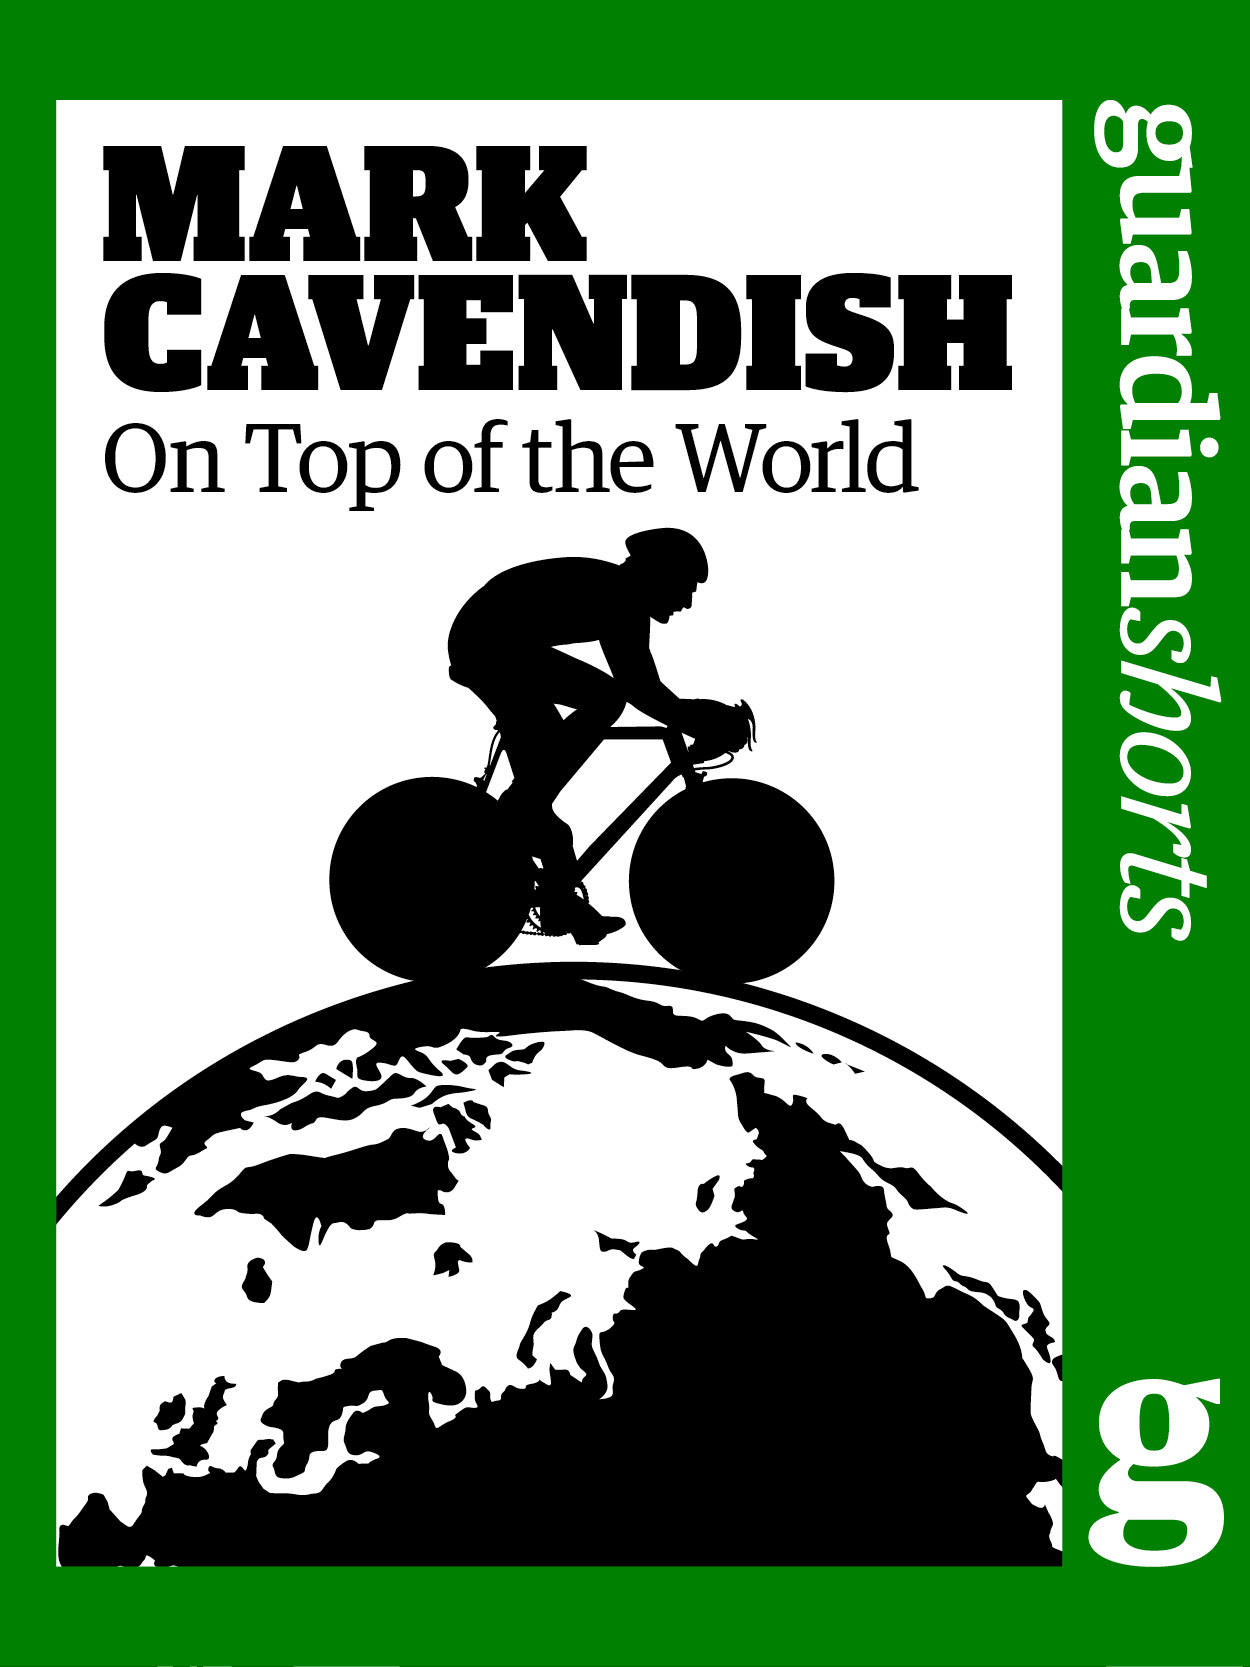 Mark Cavendish On Top of the World